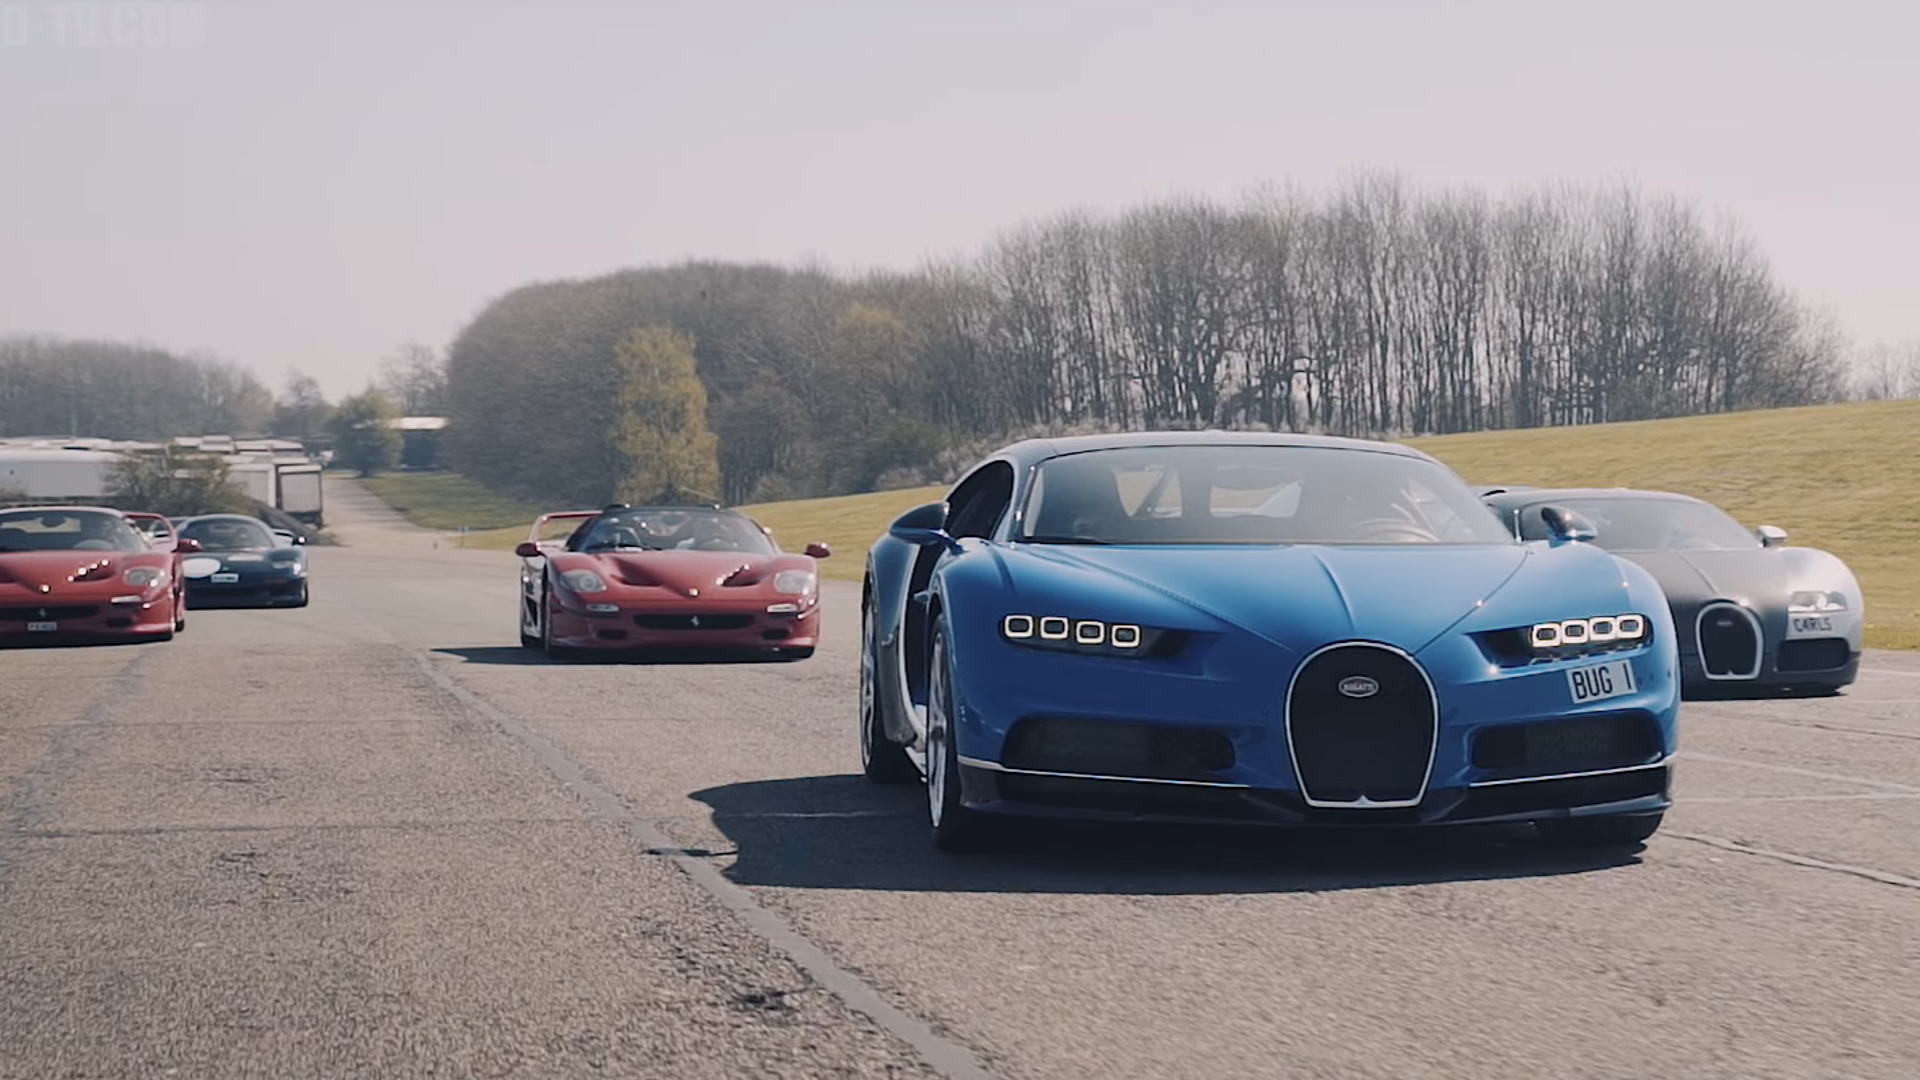 Here S What A Million Supercar Photo Shoot Looks Like The Drive